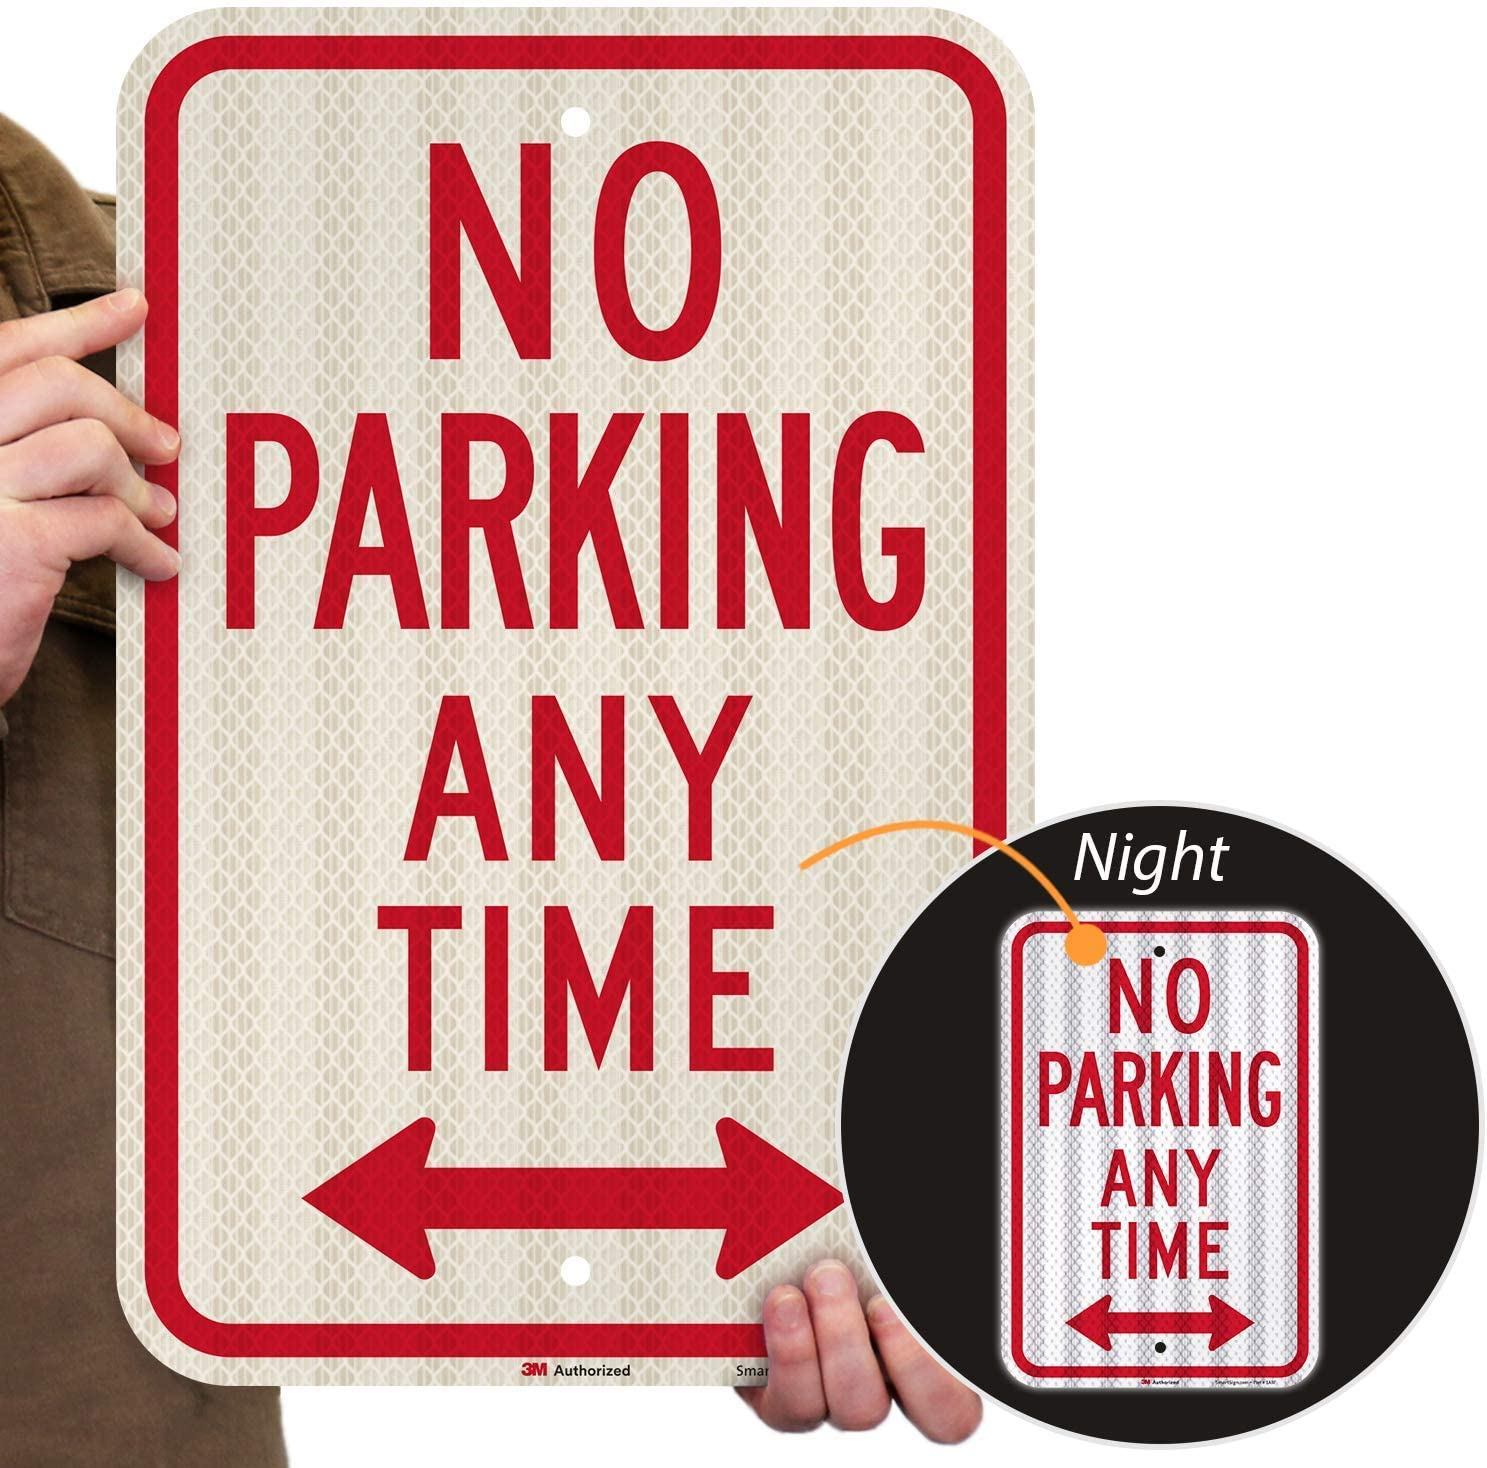 No Parking Sign 9 x 12 Inch 4 Pack